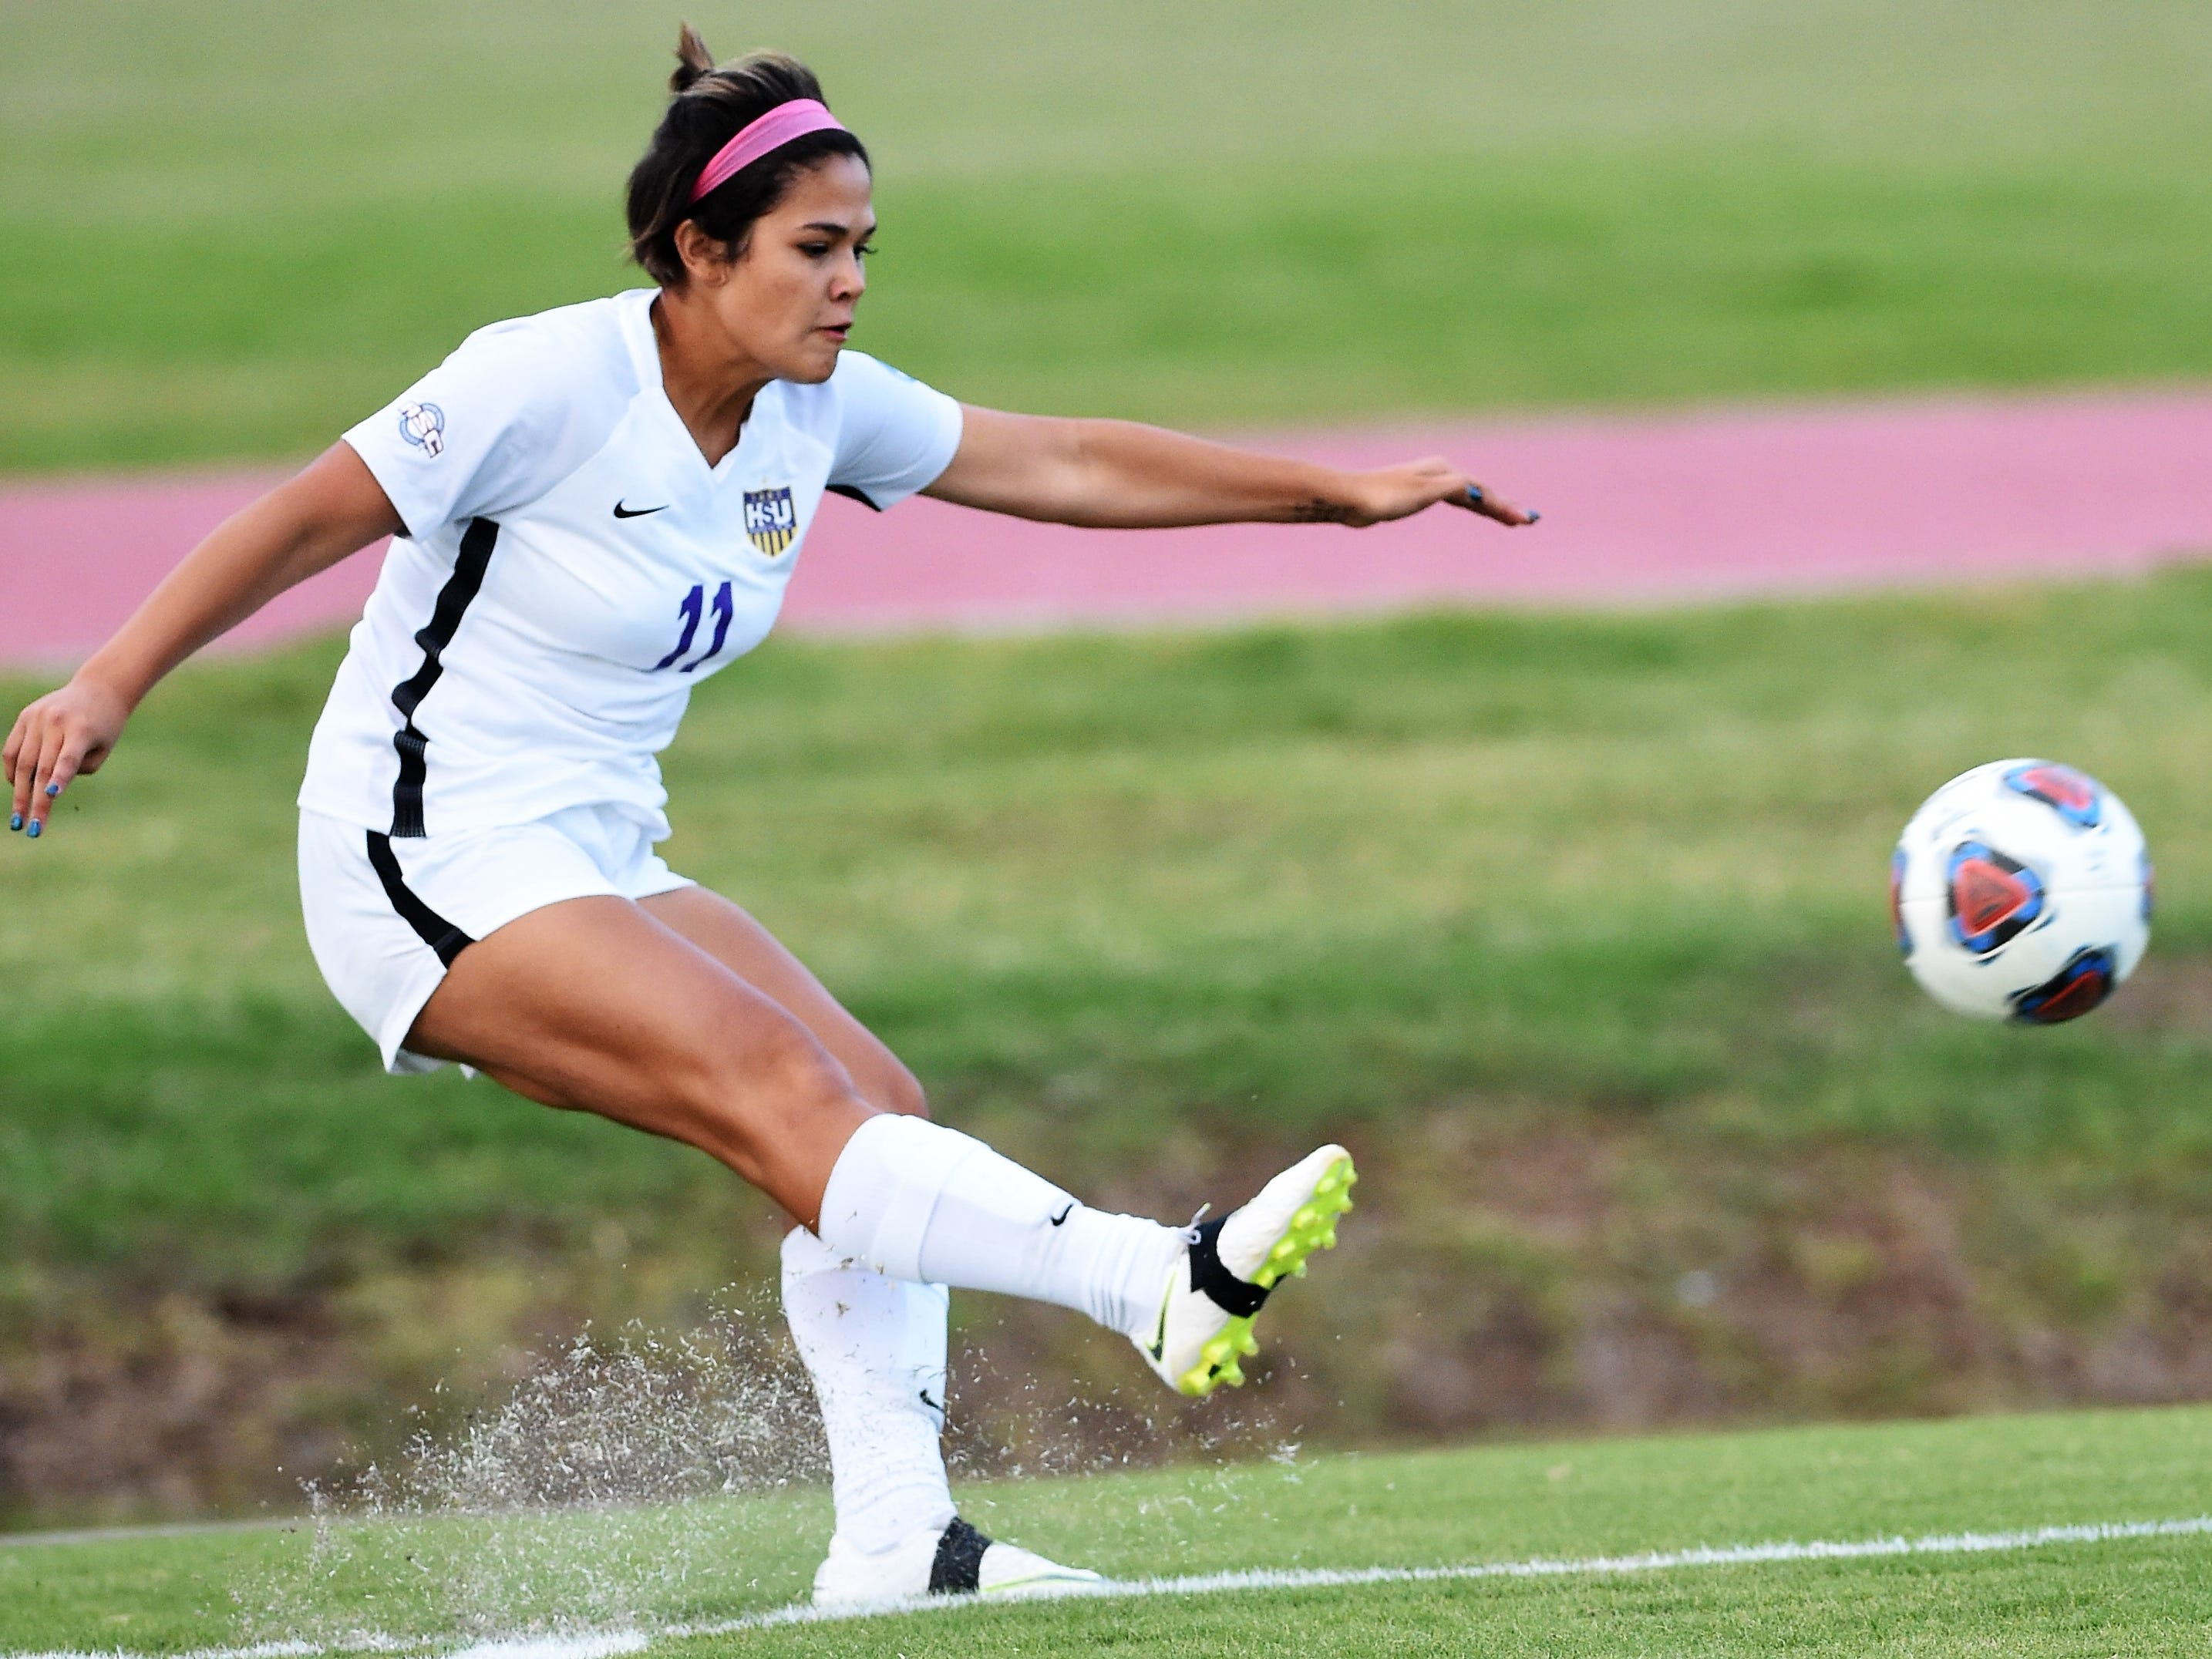 Hardin-Simmons defender Avery Lara (11) takes a corner kick against Howard Payne at the HSU Soccer Complex on Thursday, Oct. 11, 2018. The Cowgirls won 4-1.